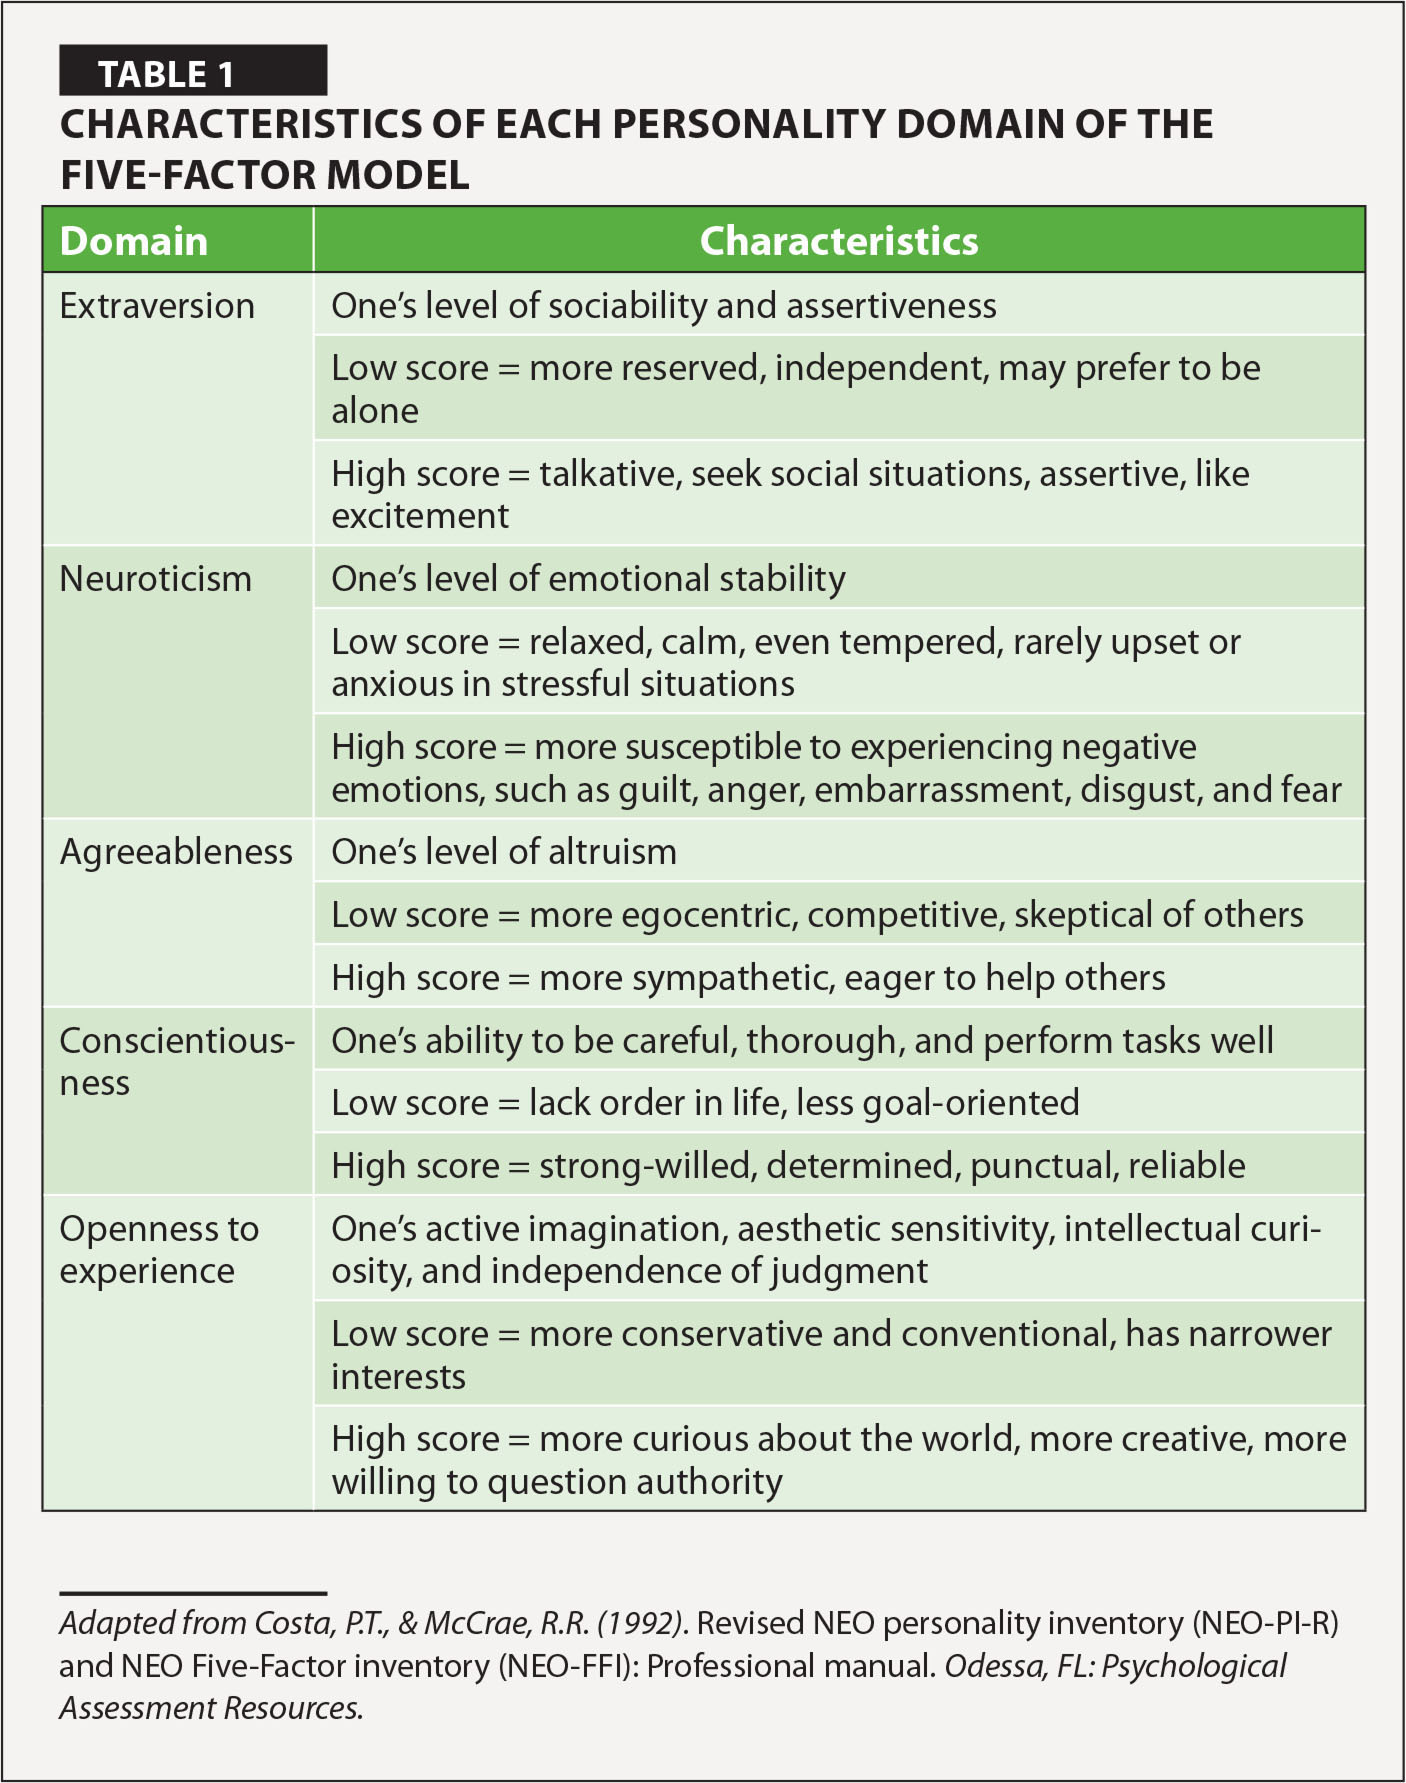 Characteristics of Each Personality Domain of the Five-Factor Model